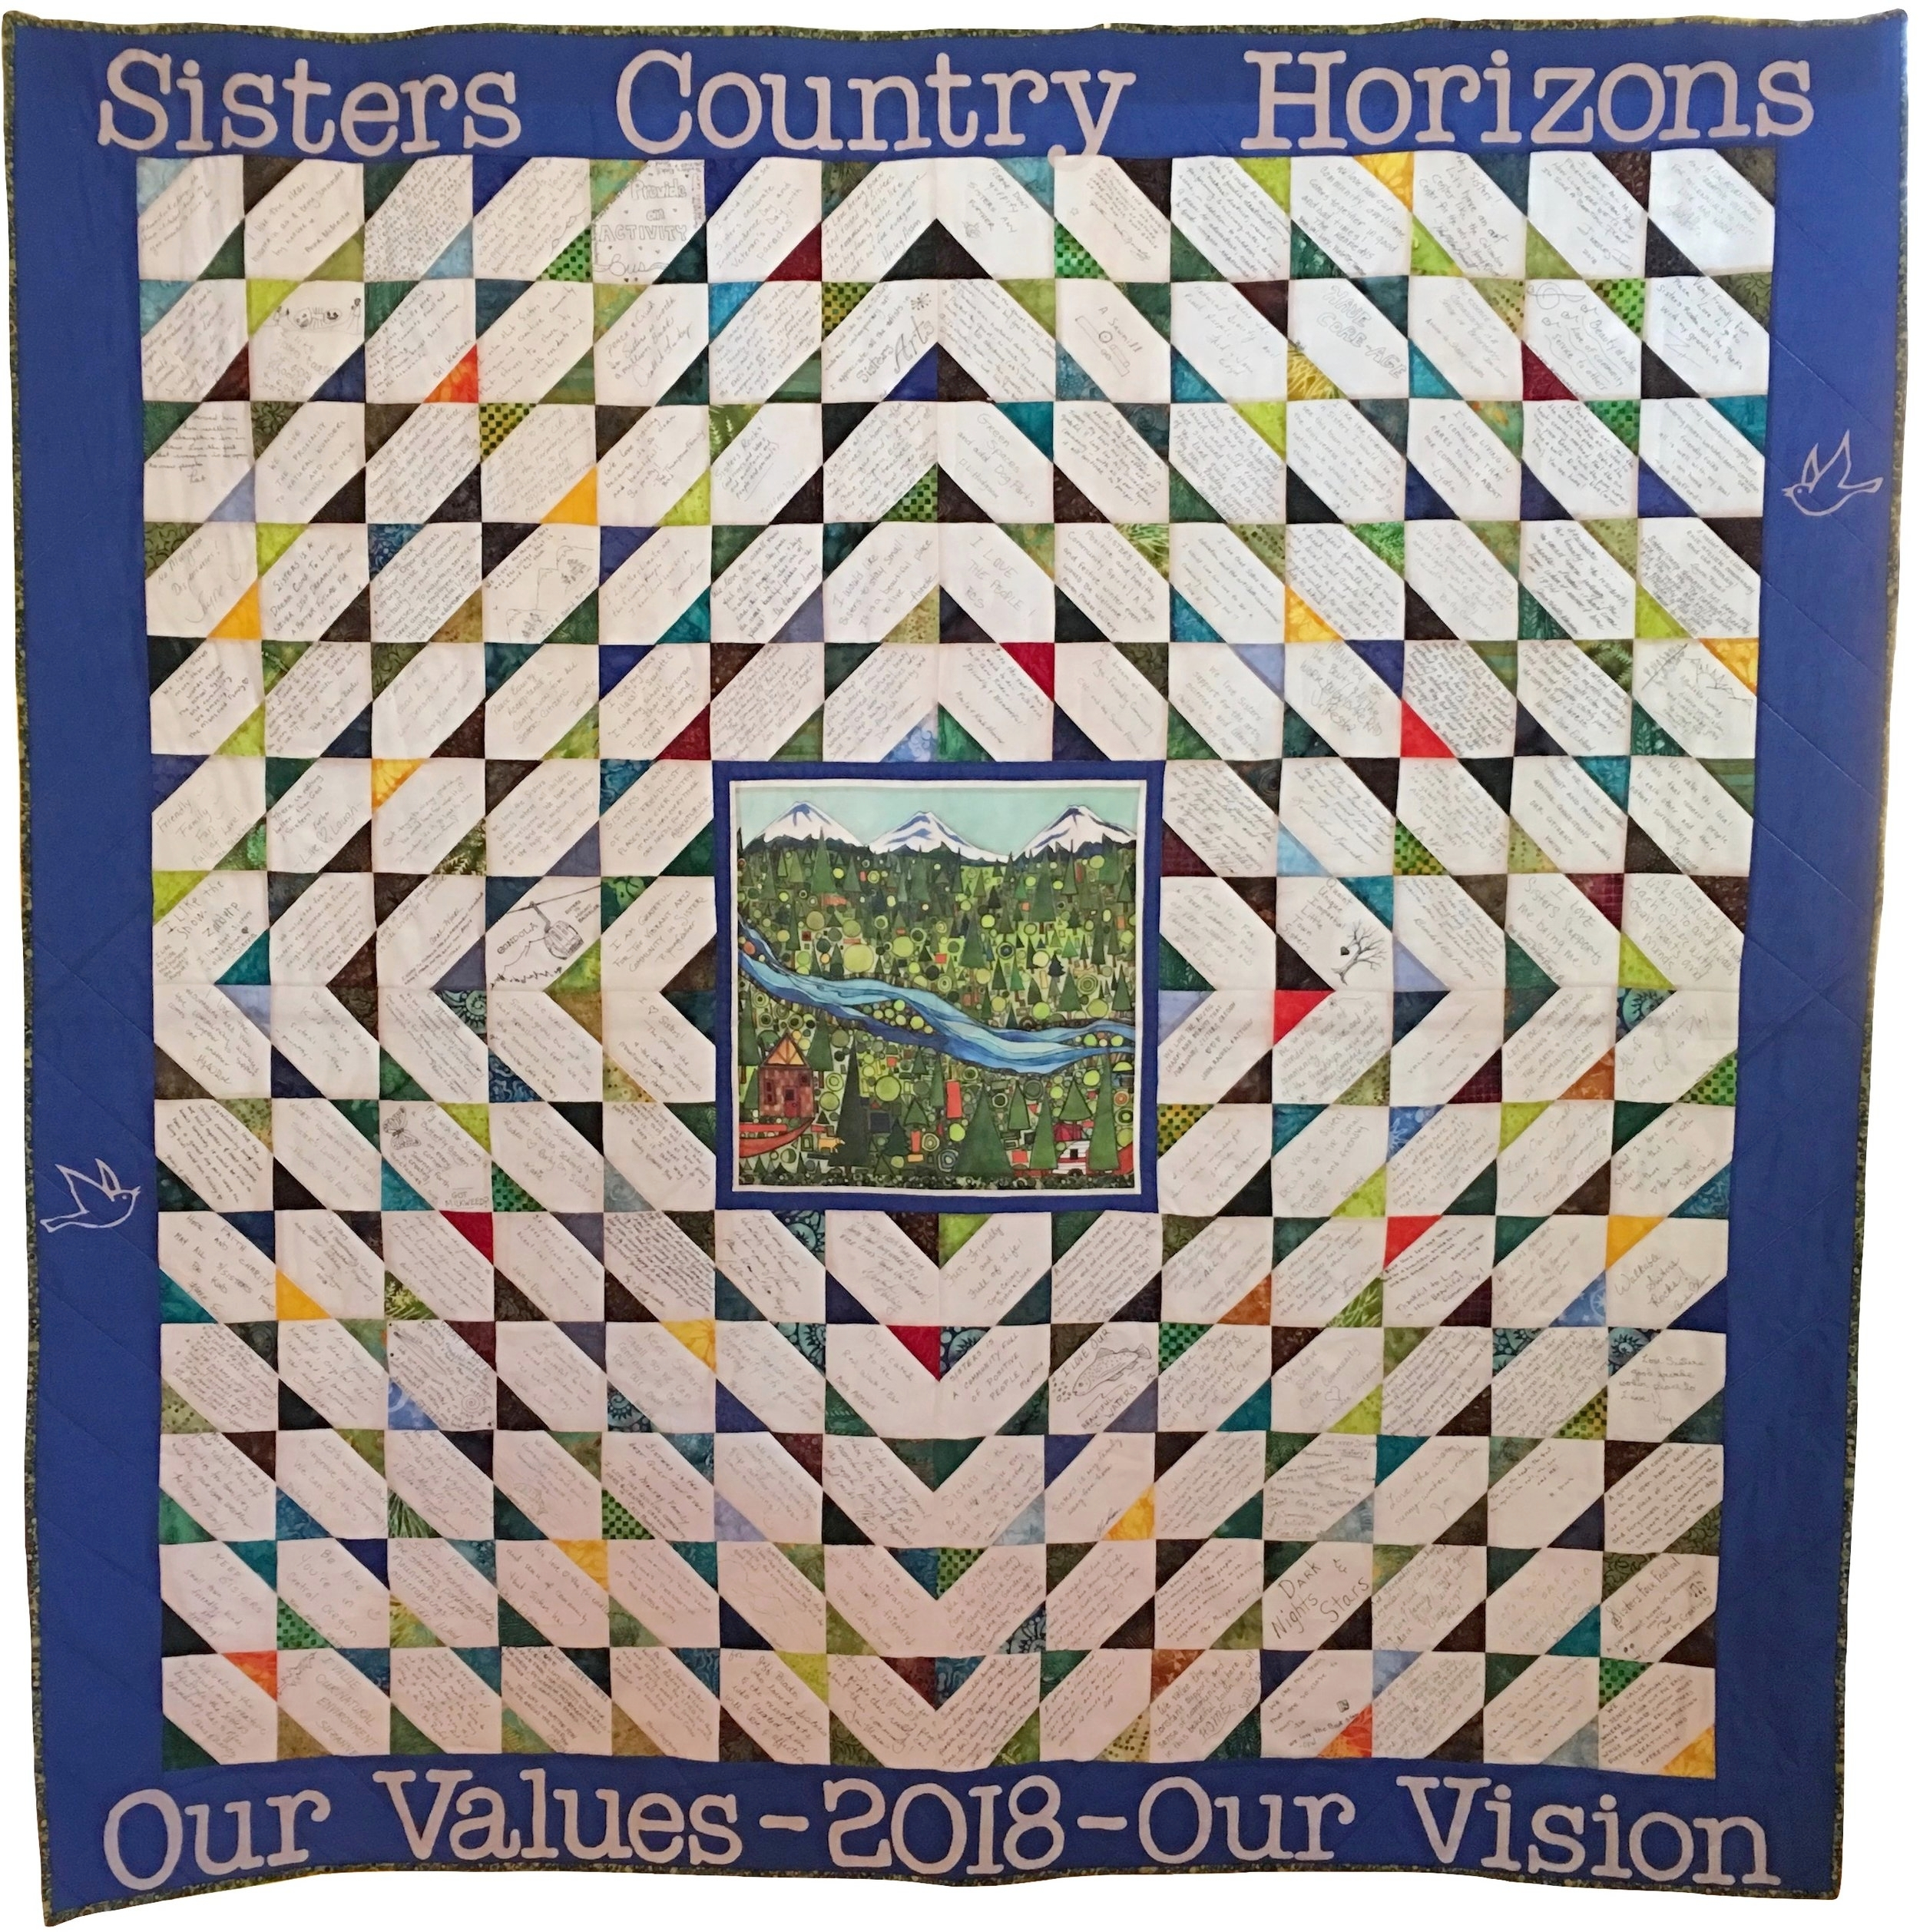 The quilt is meant to be a true community asset. Any area business, group or organization interested in displaying it is invited to contact Amy Burgstahler of  Citizens4Community  at aburgstahler@bendbroadband.com.)